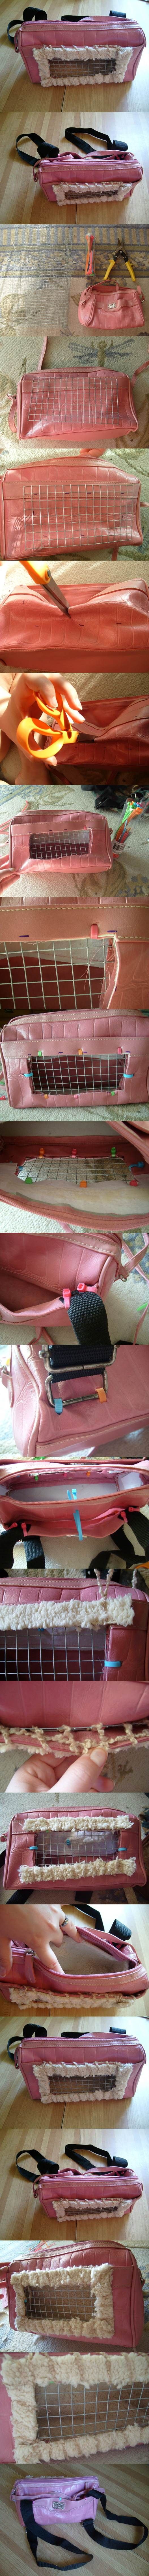 DIY Recycled Small Pet Carrier Backpack 2